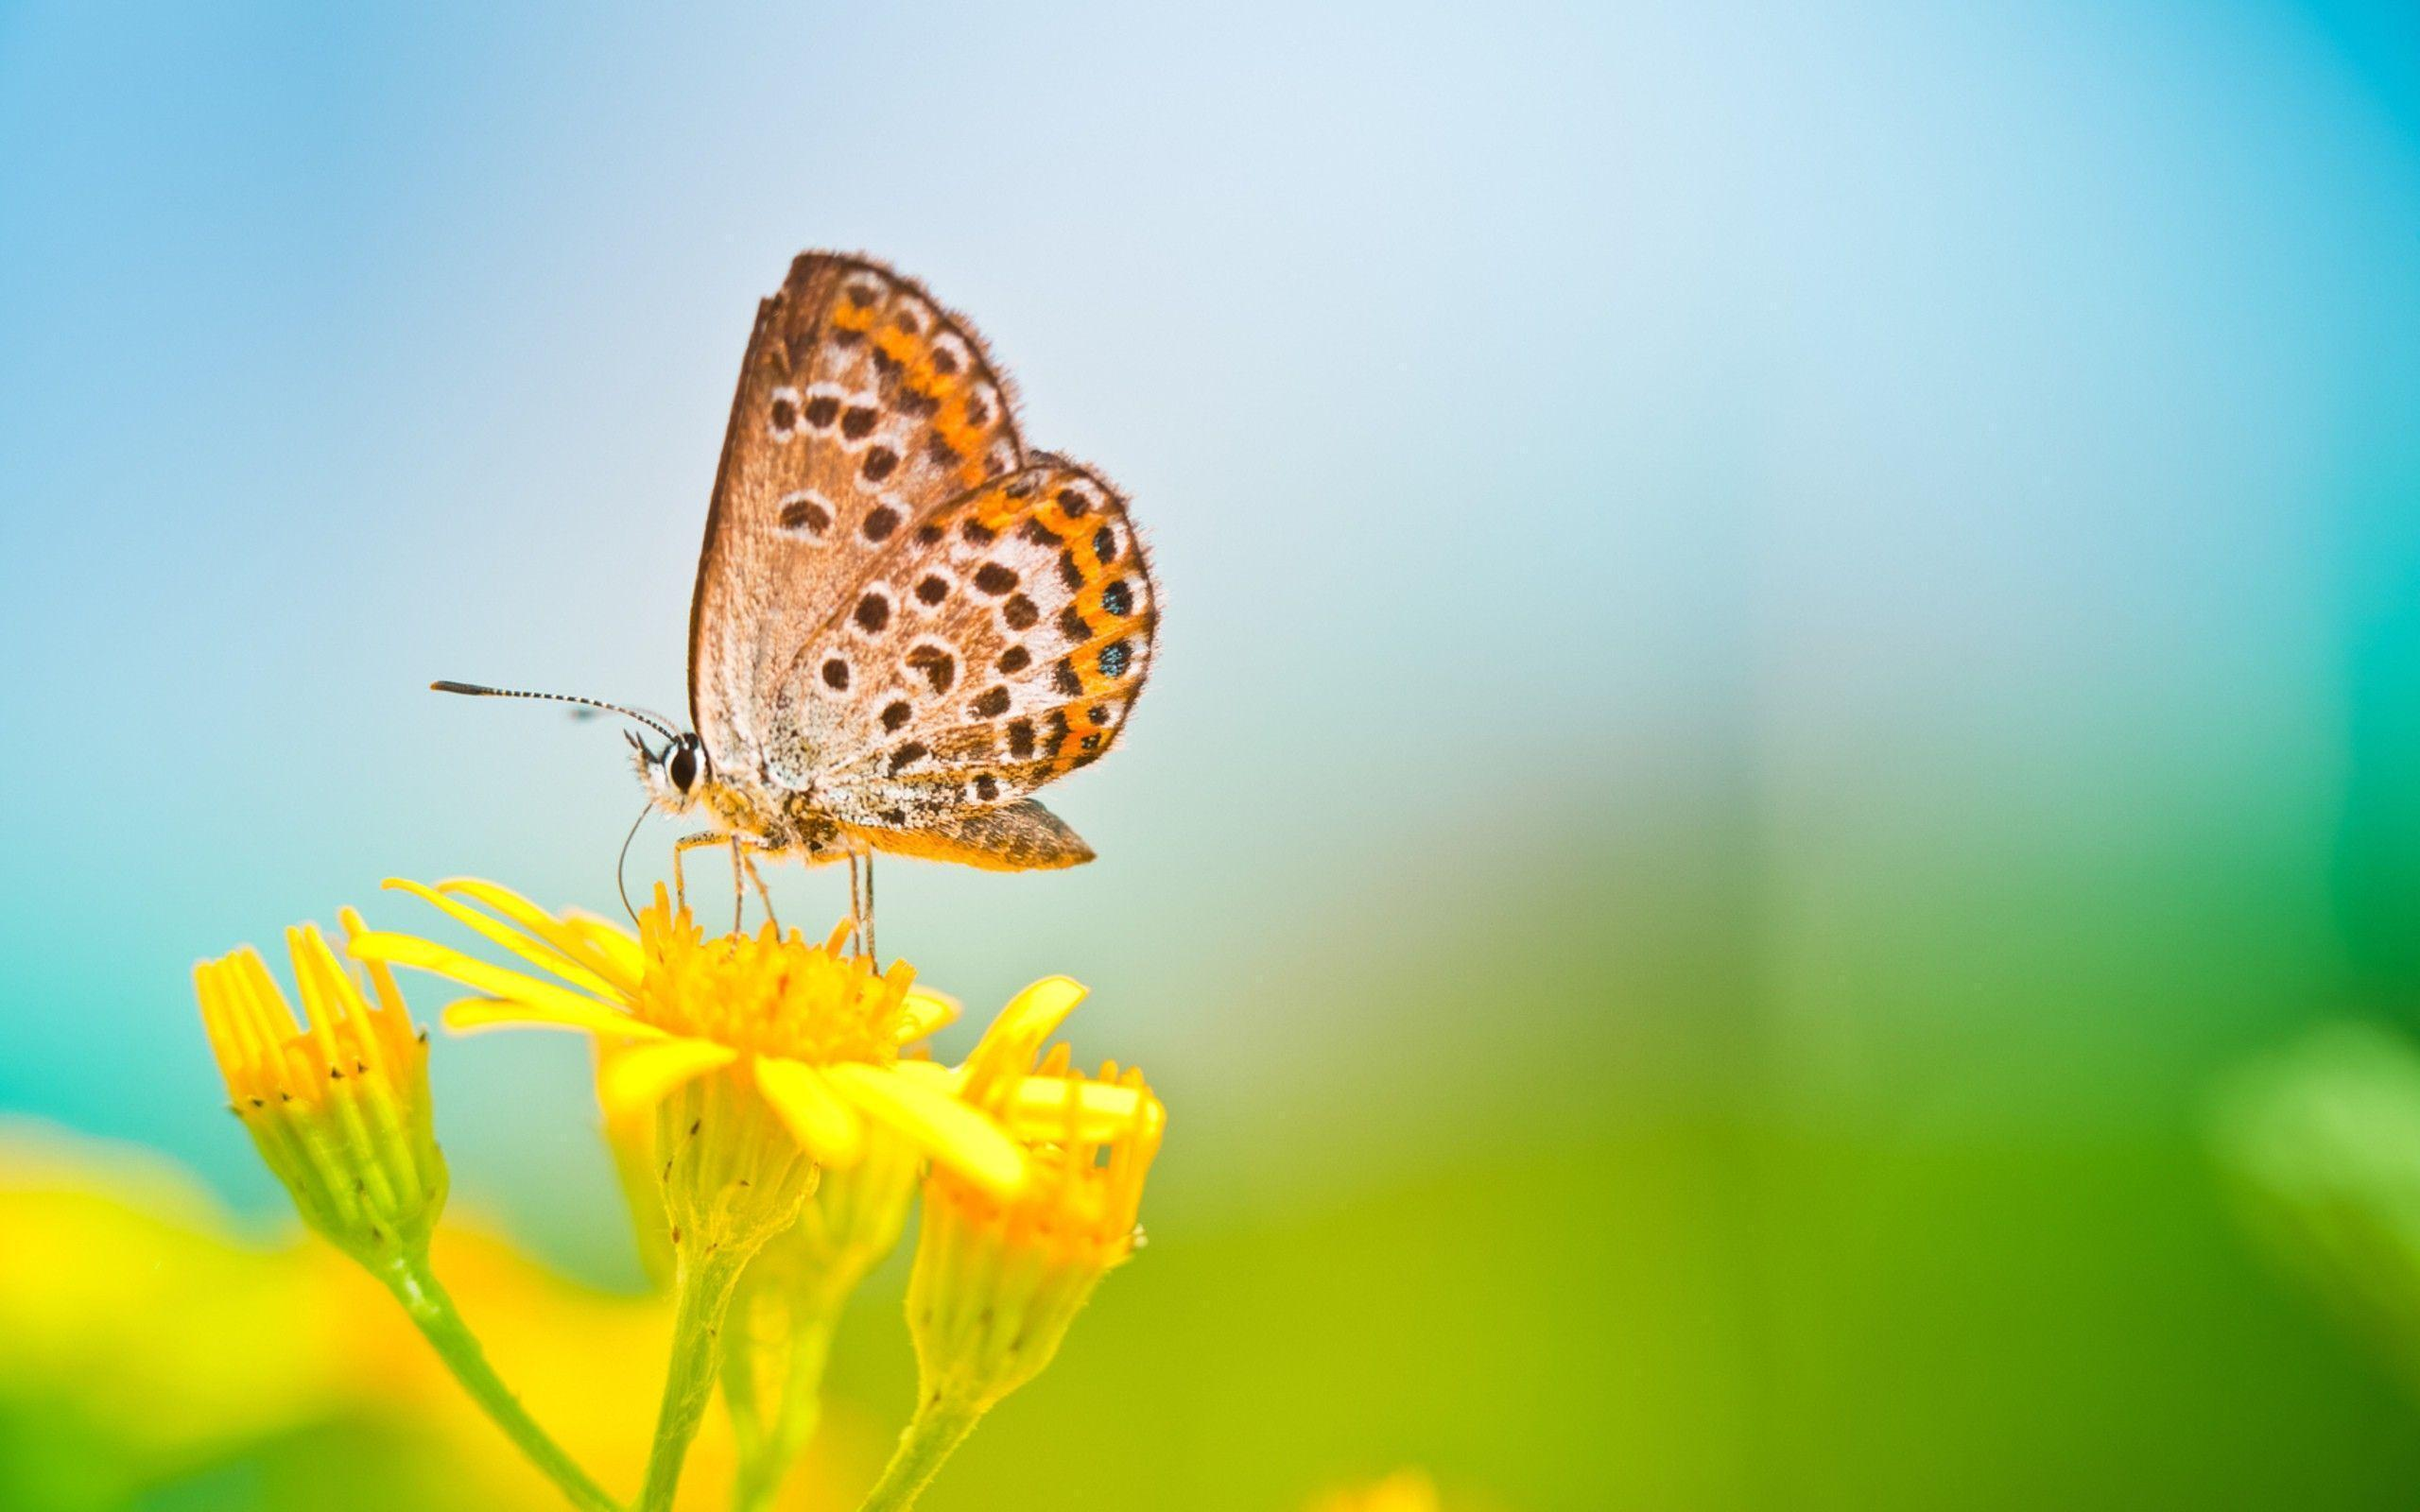 Butterfly Wallpaper Images - Wallpaper Cave